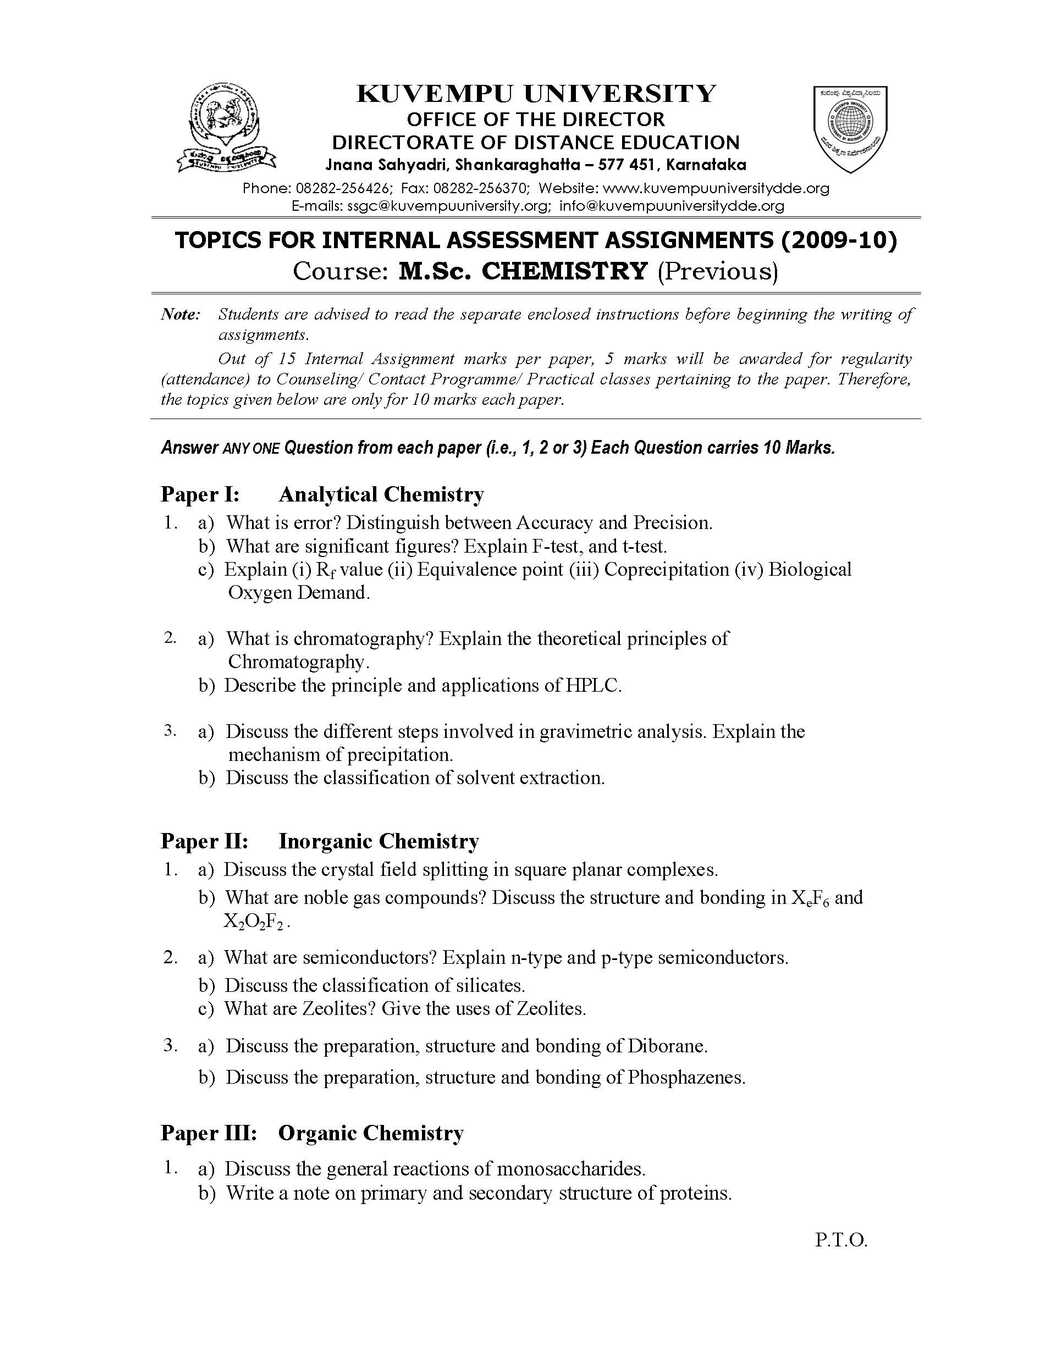 kuvempu university msc chemistry assignments eduvark assignment question paper for msc chemistry program kuvempu university